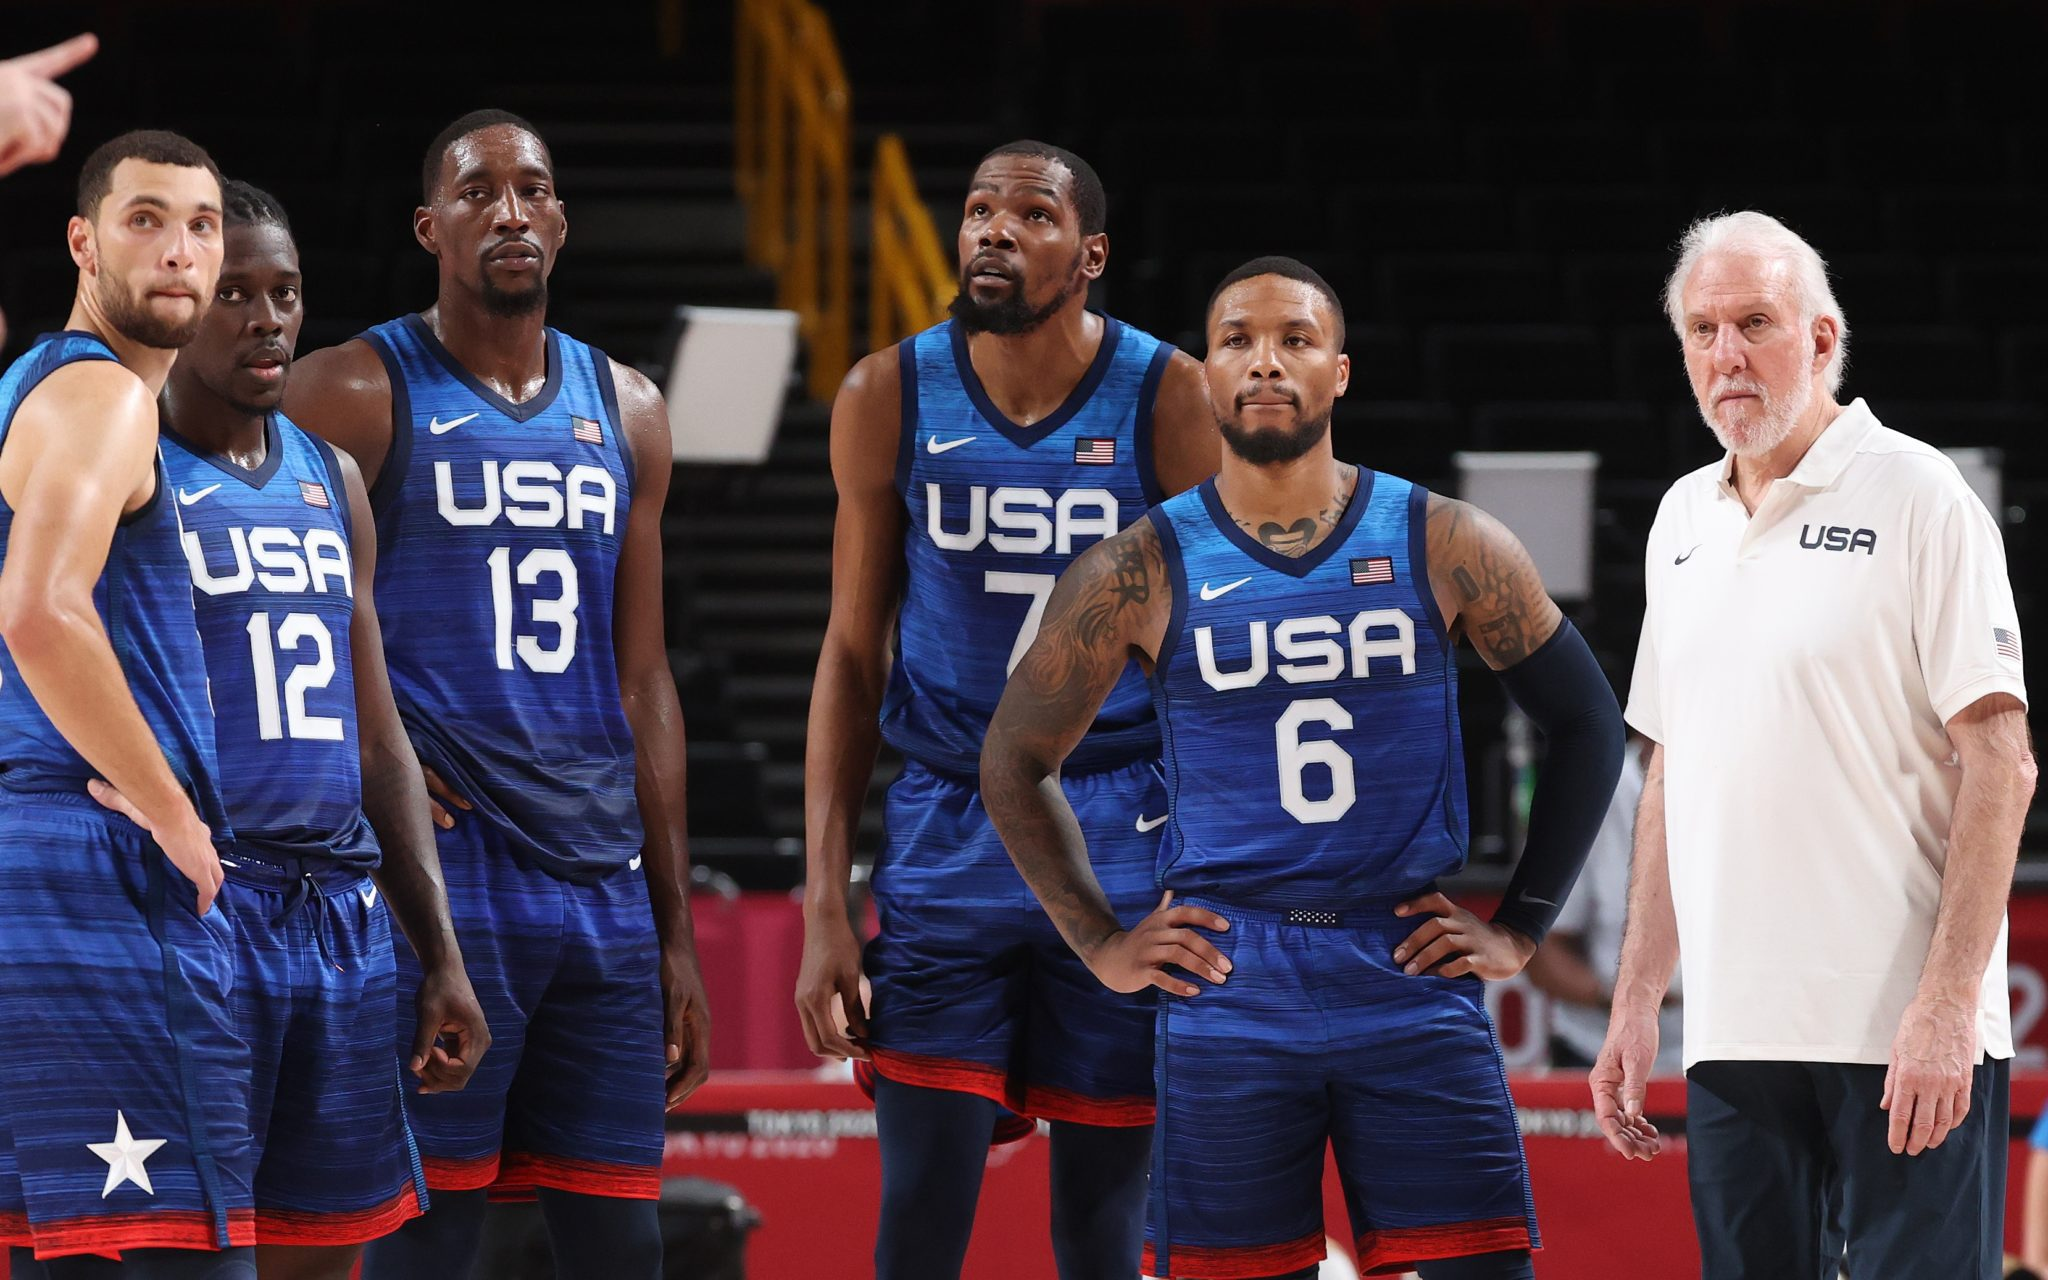 For Team USA, Tensions Are High and Time Is Running Out